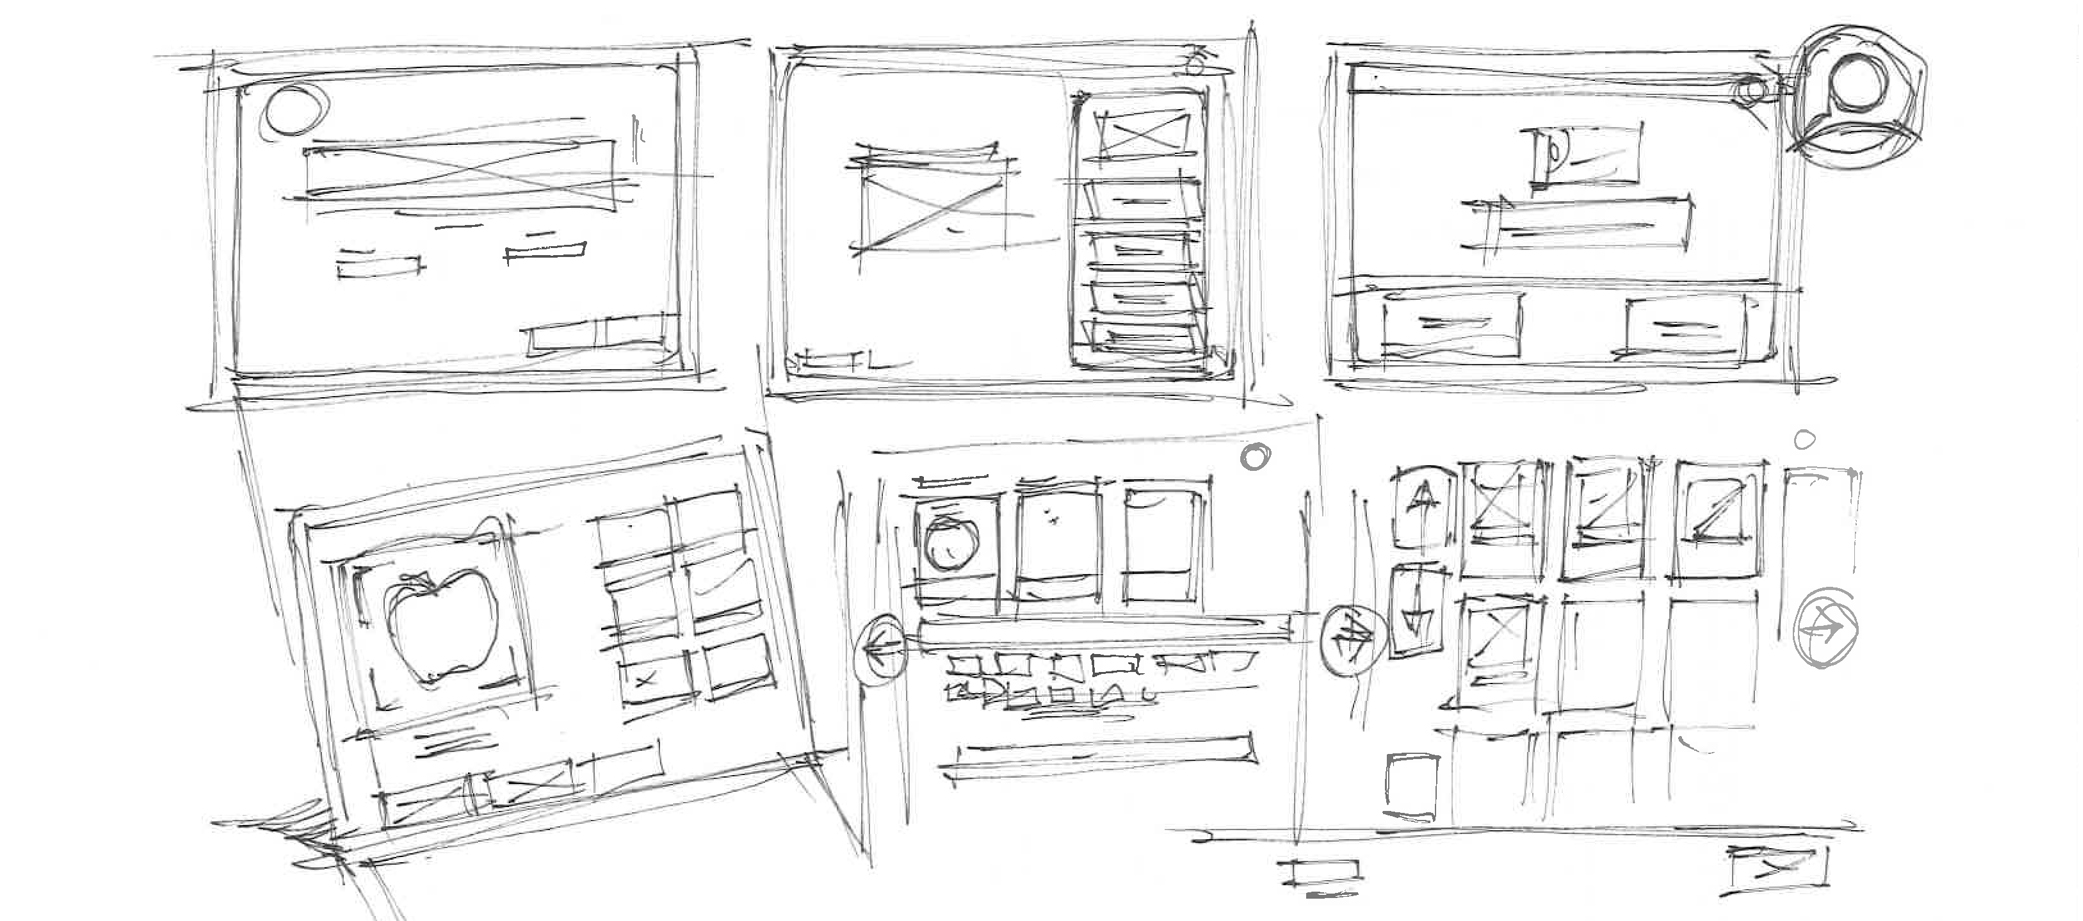 UX Damon wireframes sketches Self CHeckout.jpg